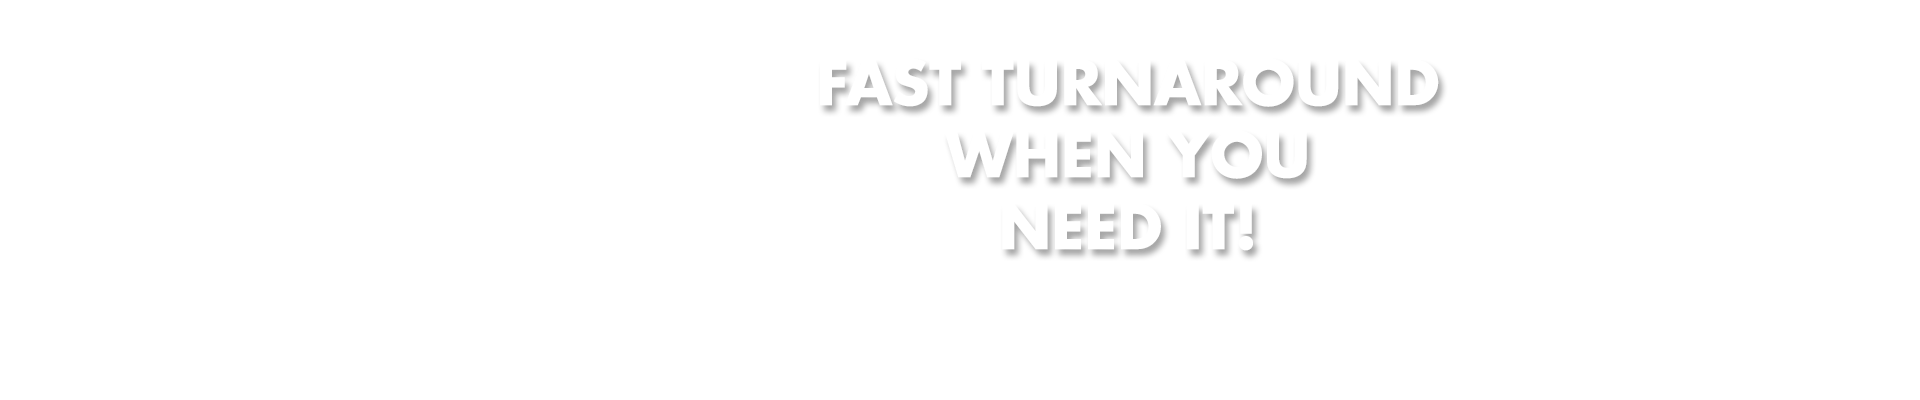 fast turn around when you need it